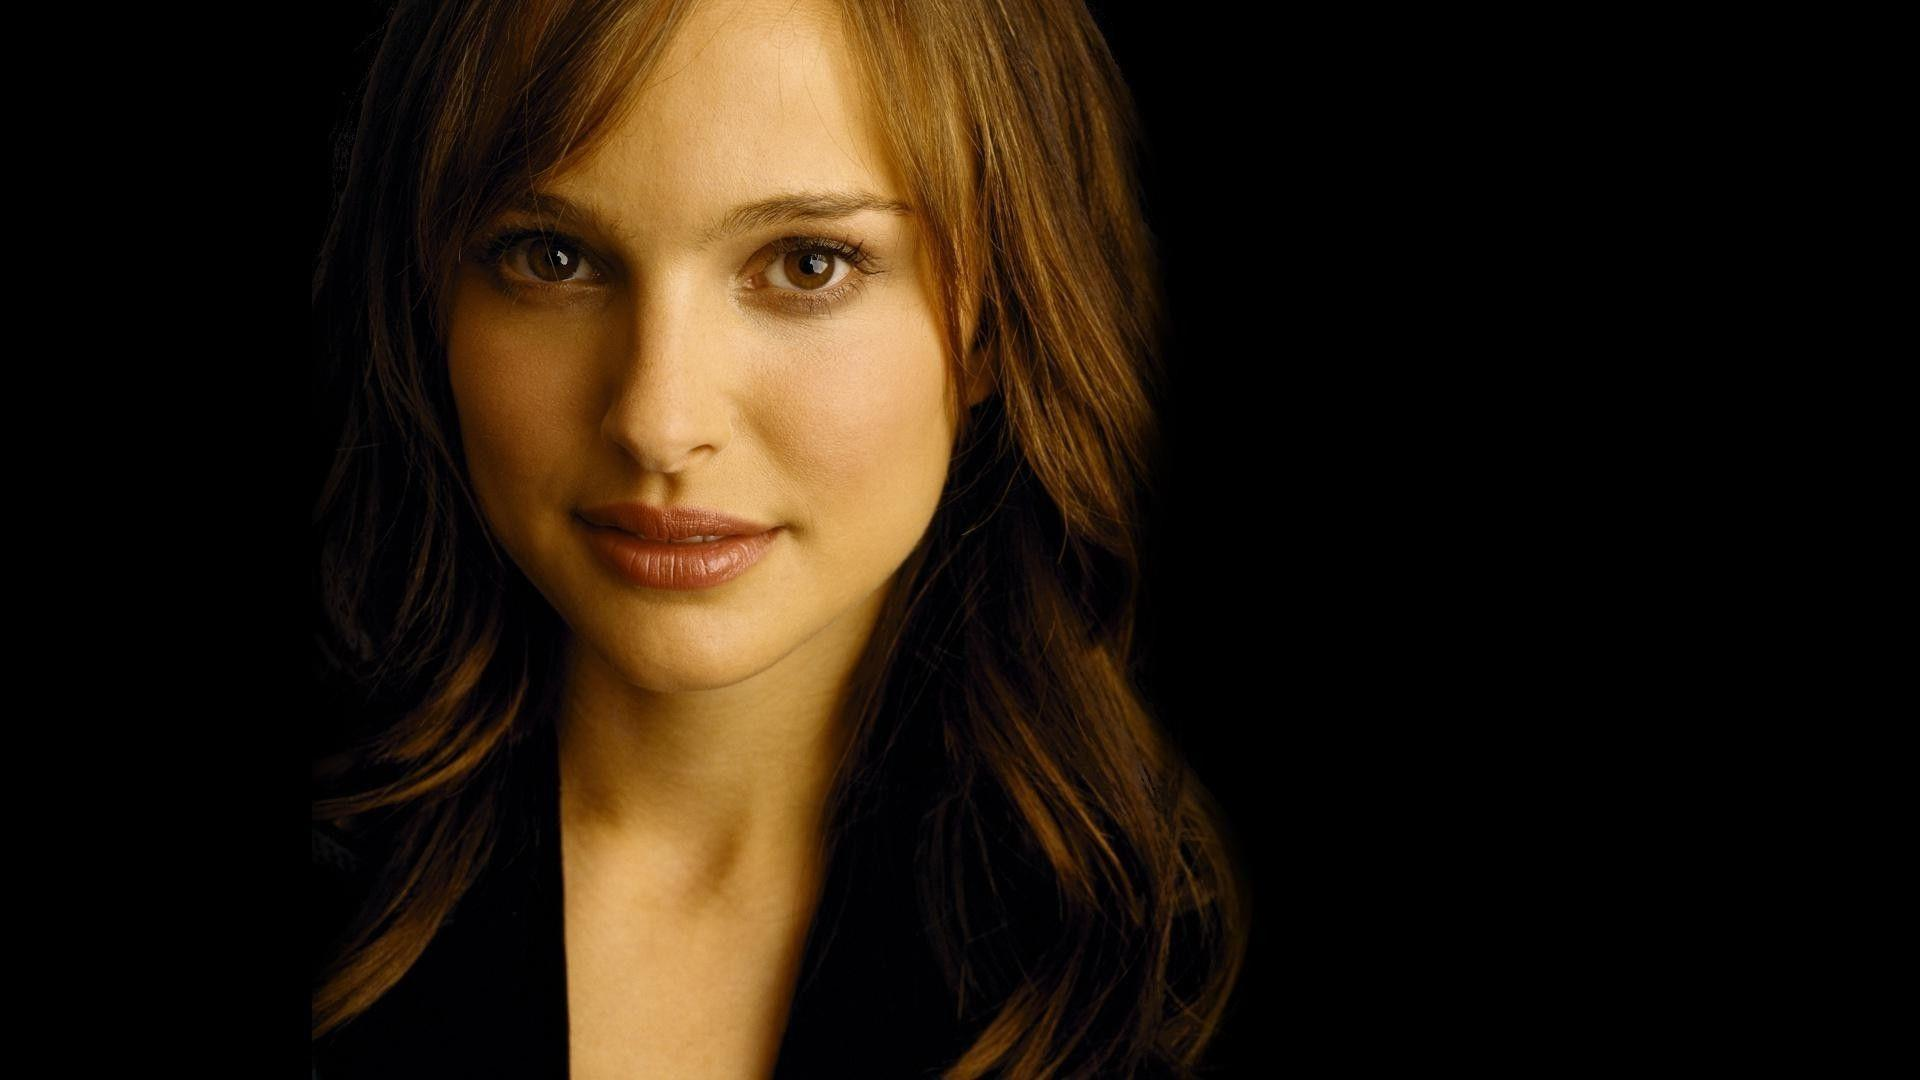 Natalie Portman Wallpapers 1366x768 HD Wallpapers Pictures